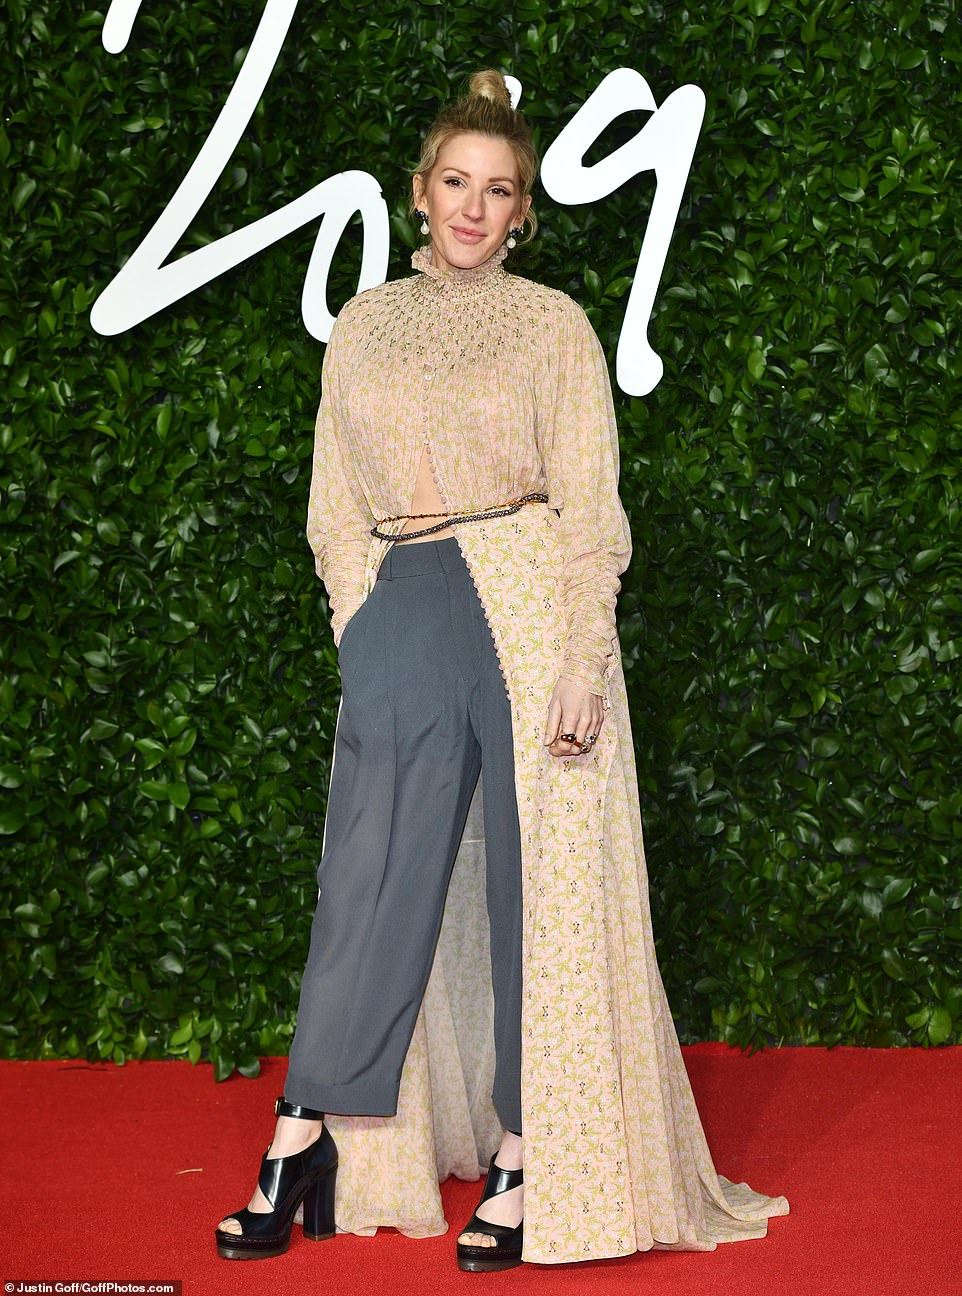 The British Fashion Awards is famous for its uber-stylish and star-studded guestlist, but this year it seems a number of celebrities made some questionable style choices. Ellie Goulding (pictured) led the way for those who were worst dressed at tonight's Fashion Awards at the Royal Albert Hall